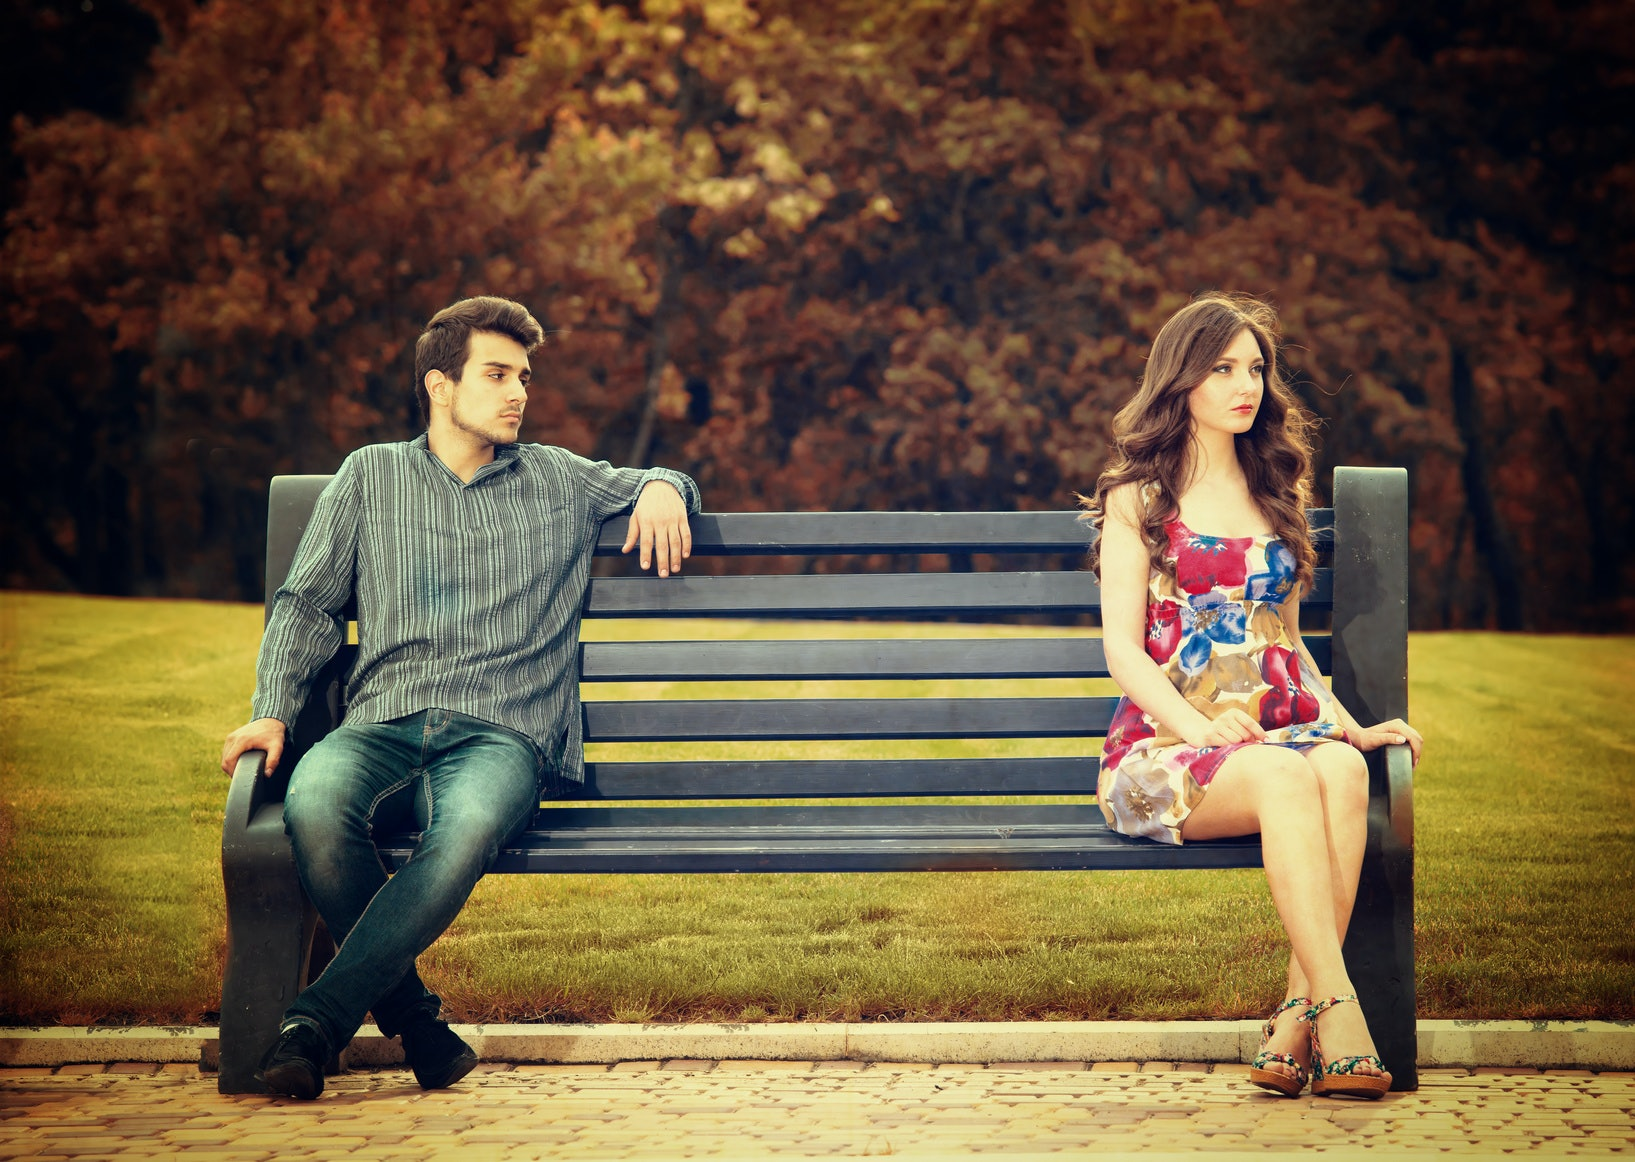 How to fight effectively in a relationship